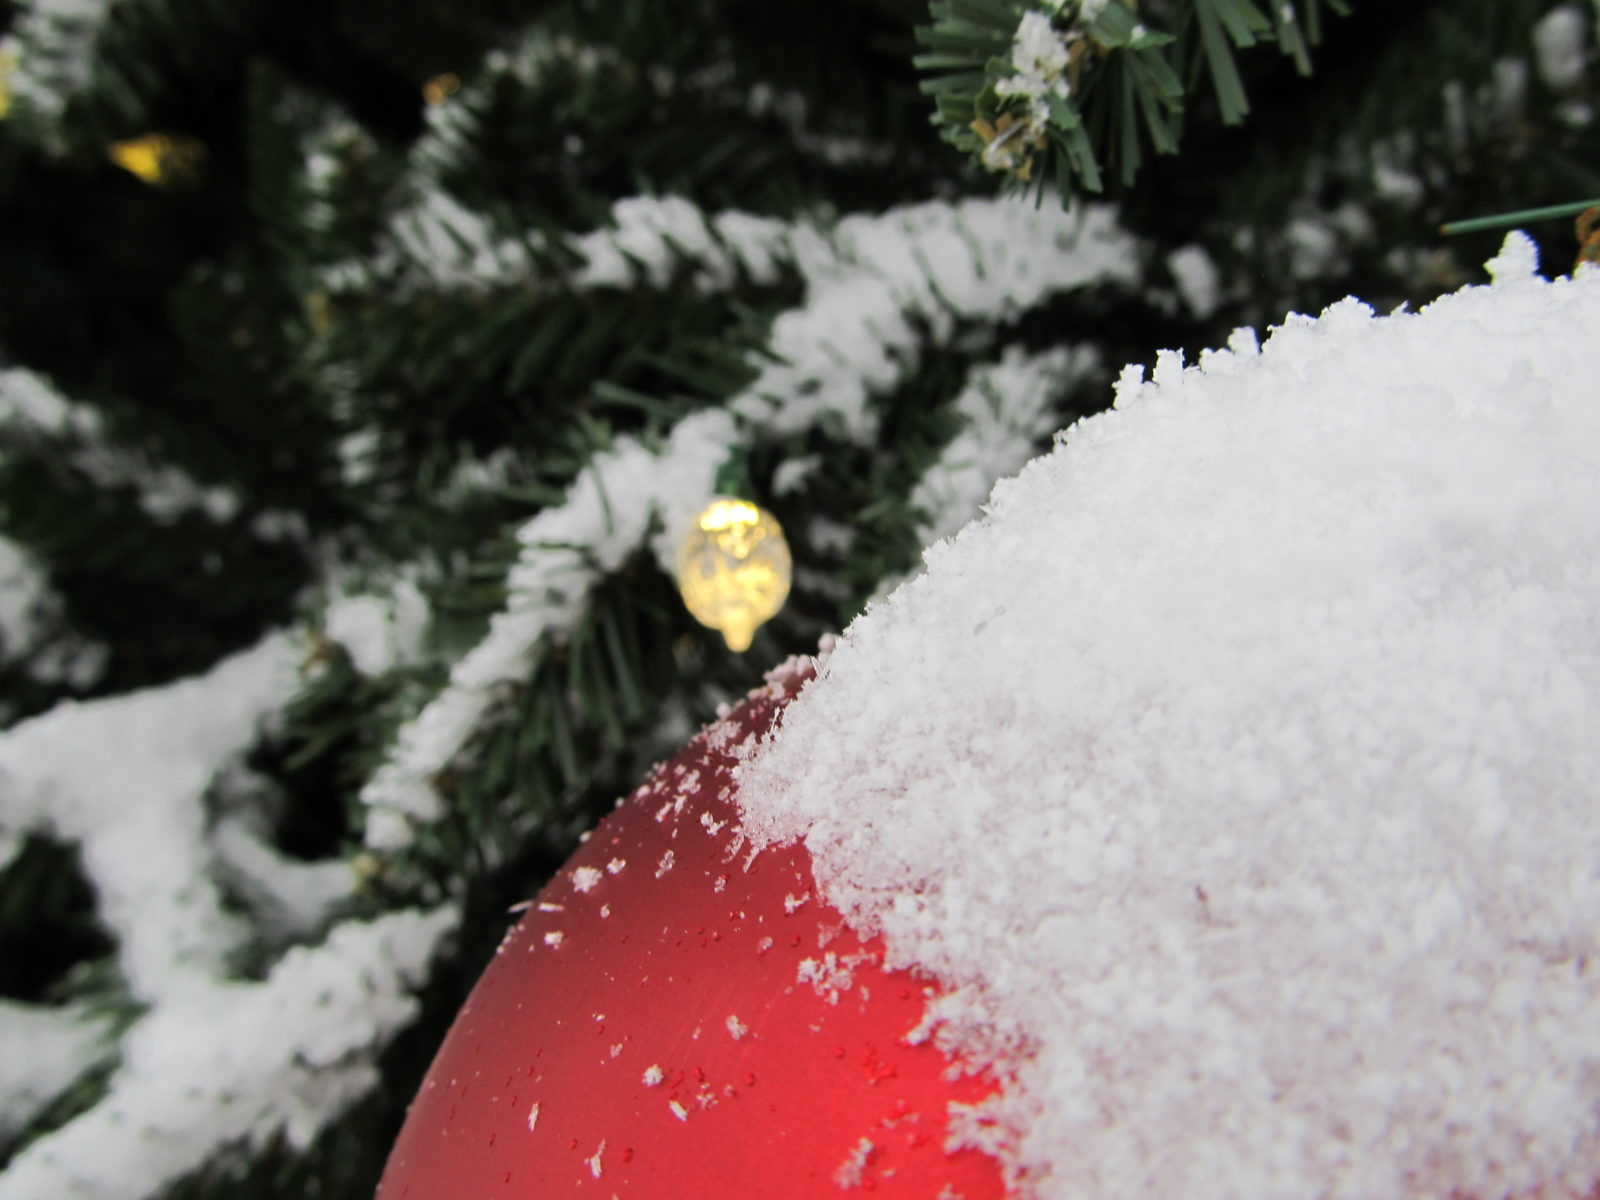 Jackson Square Christmas Tree Ornament in the Snow